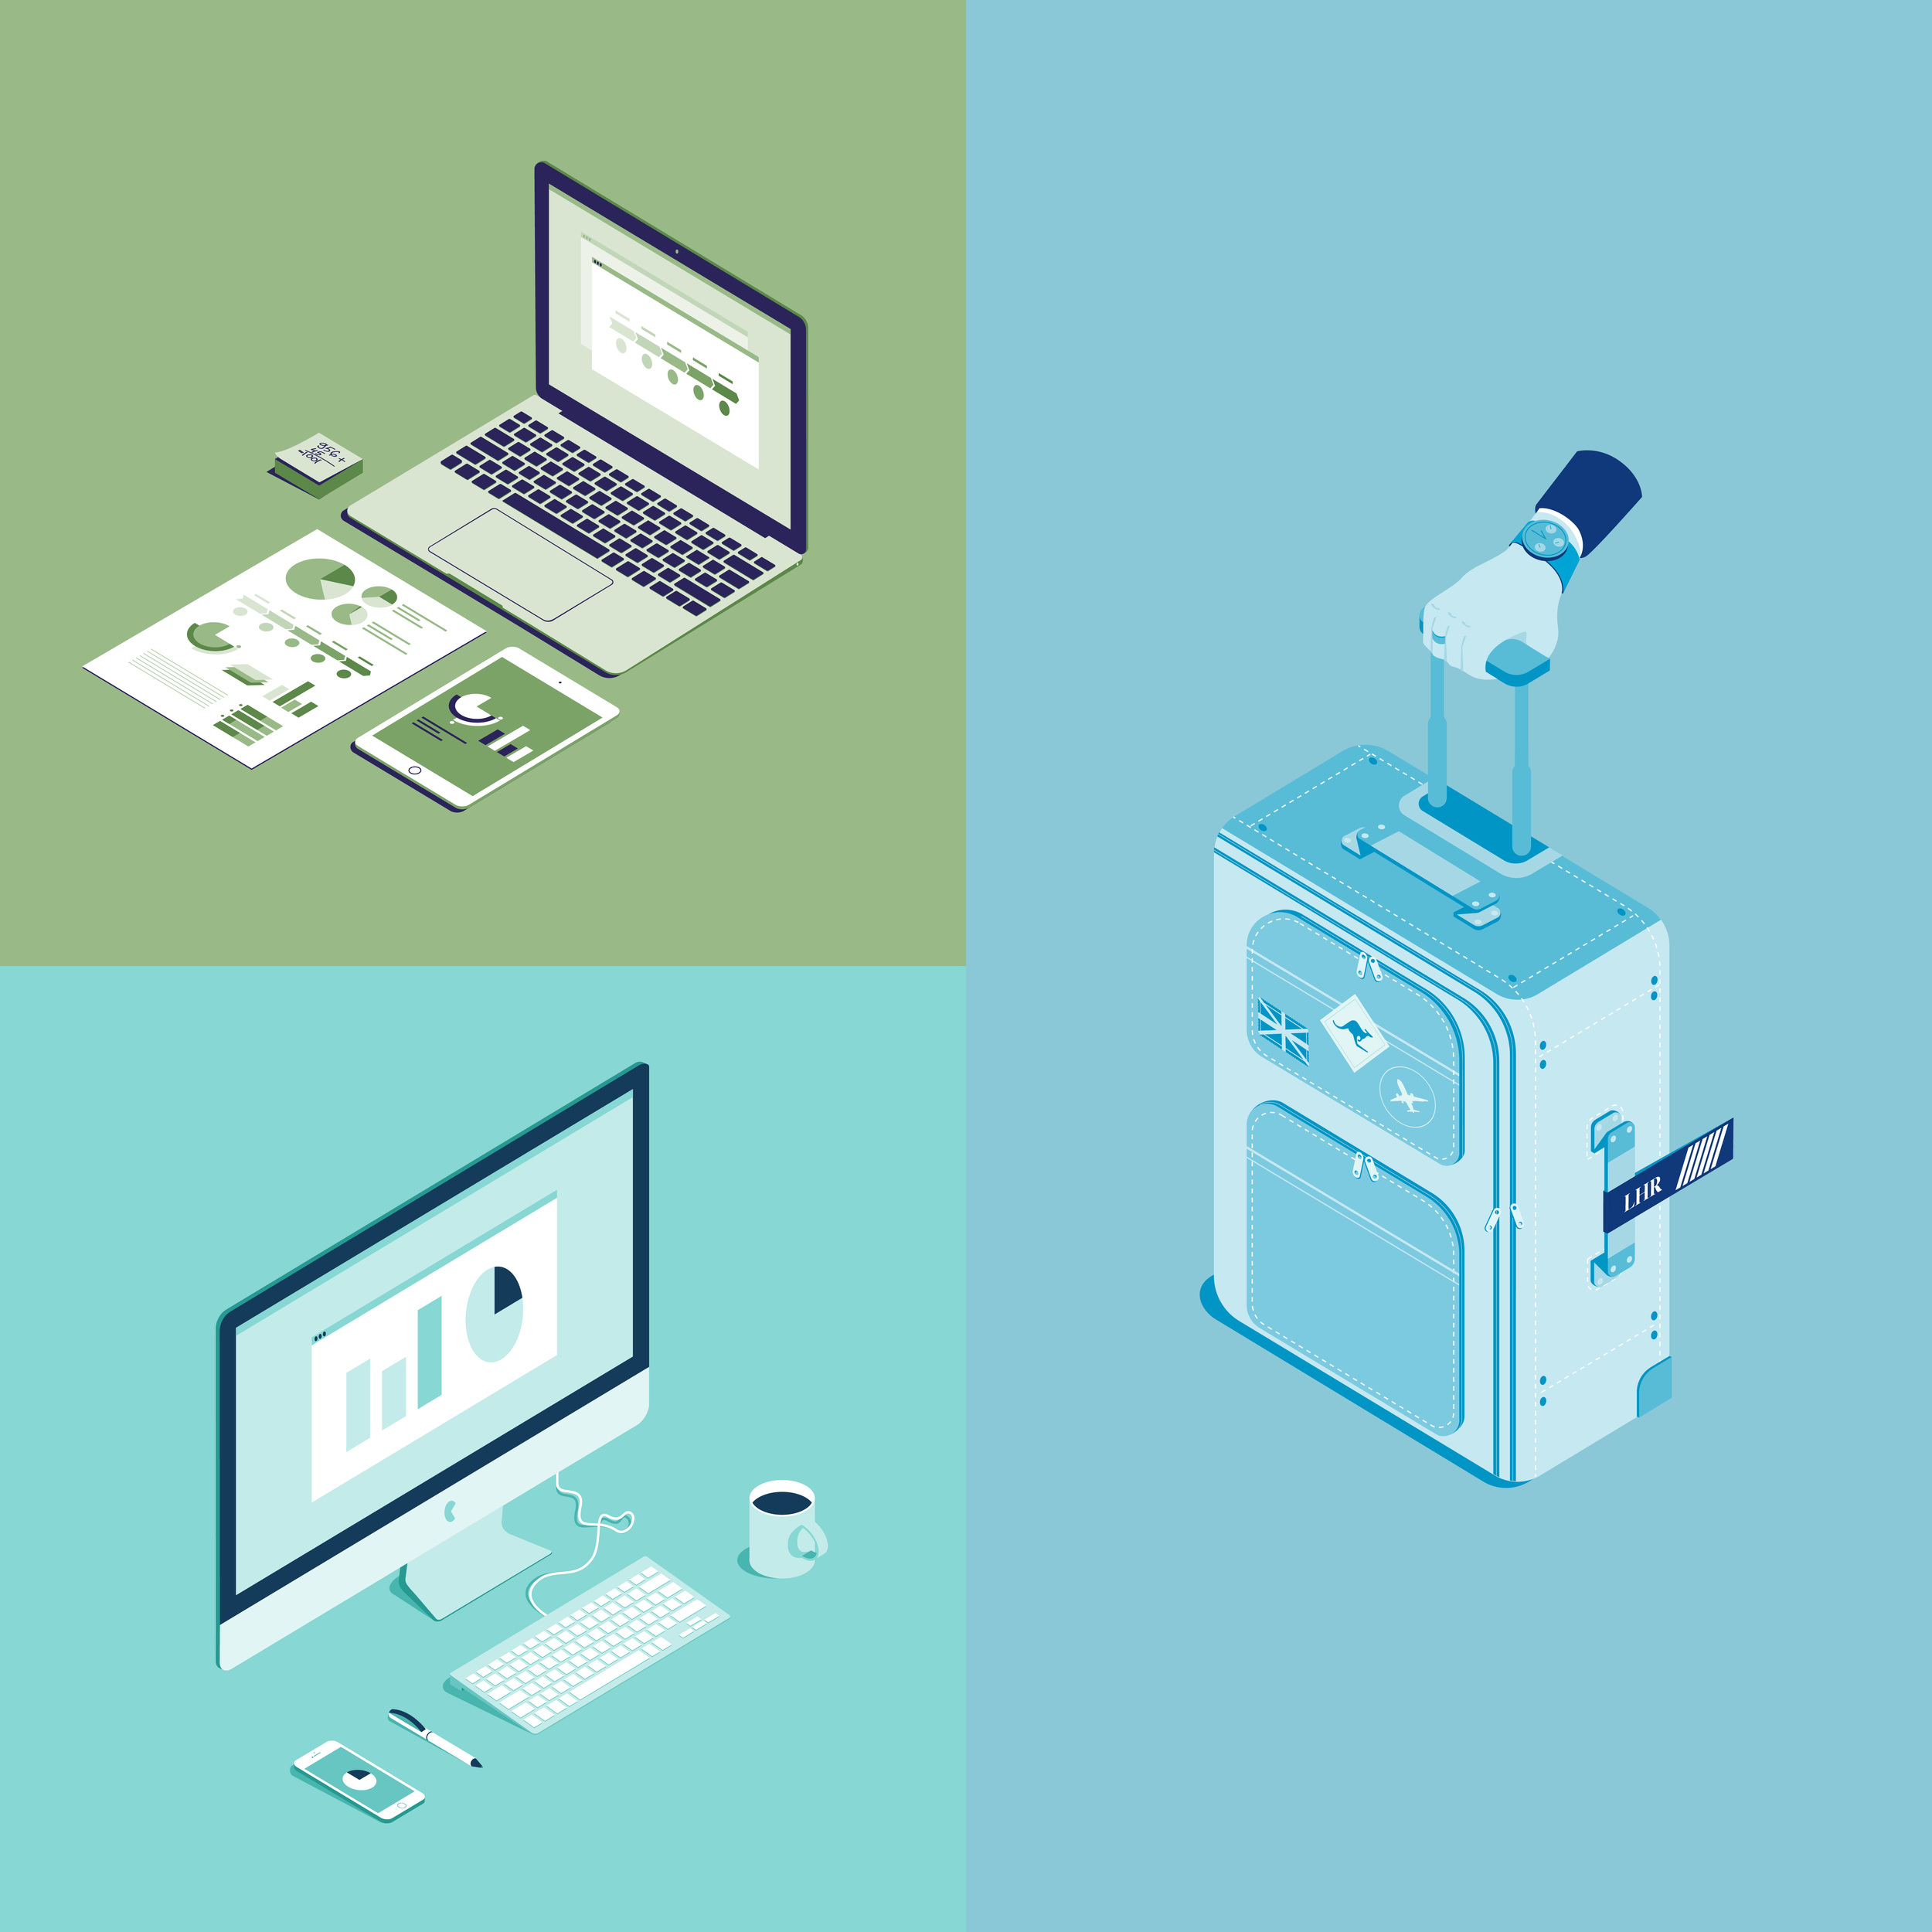 Set of illustrations for the OT-24 website subcategory    Client: company  OT-24     Production year: 2015